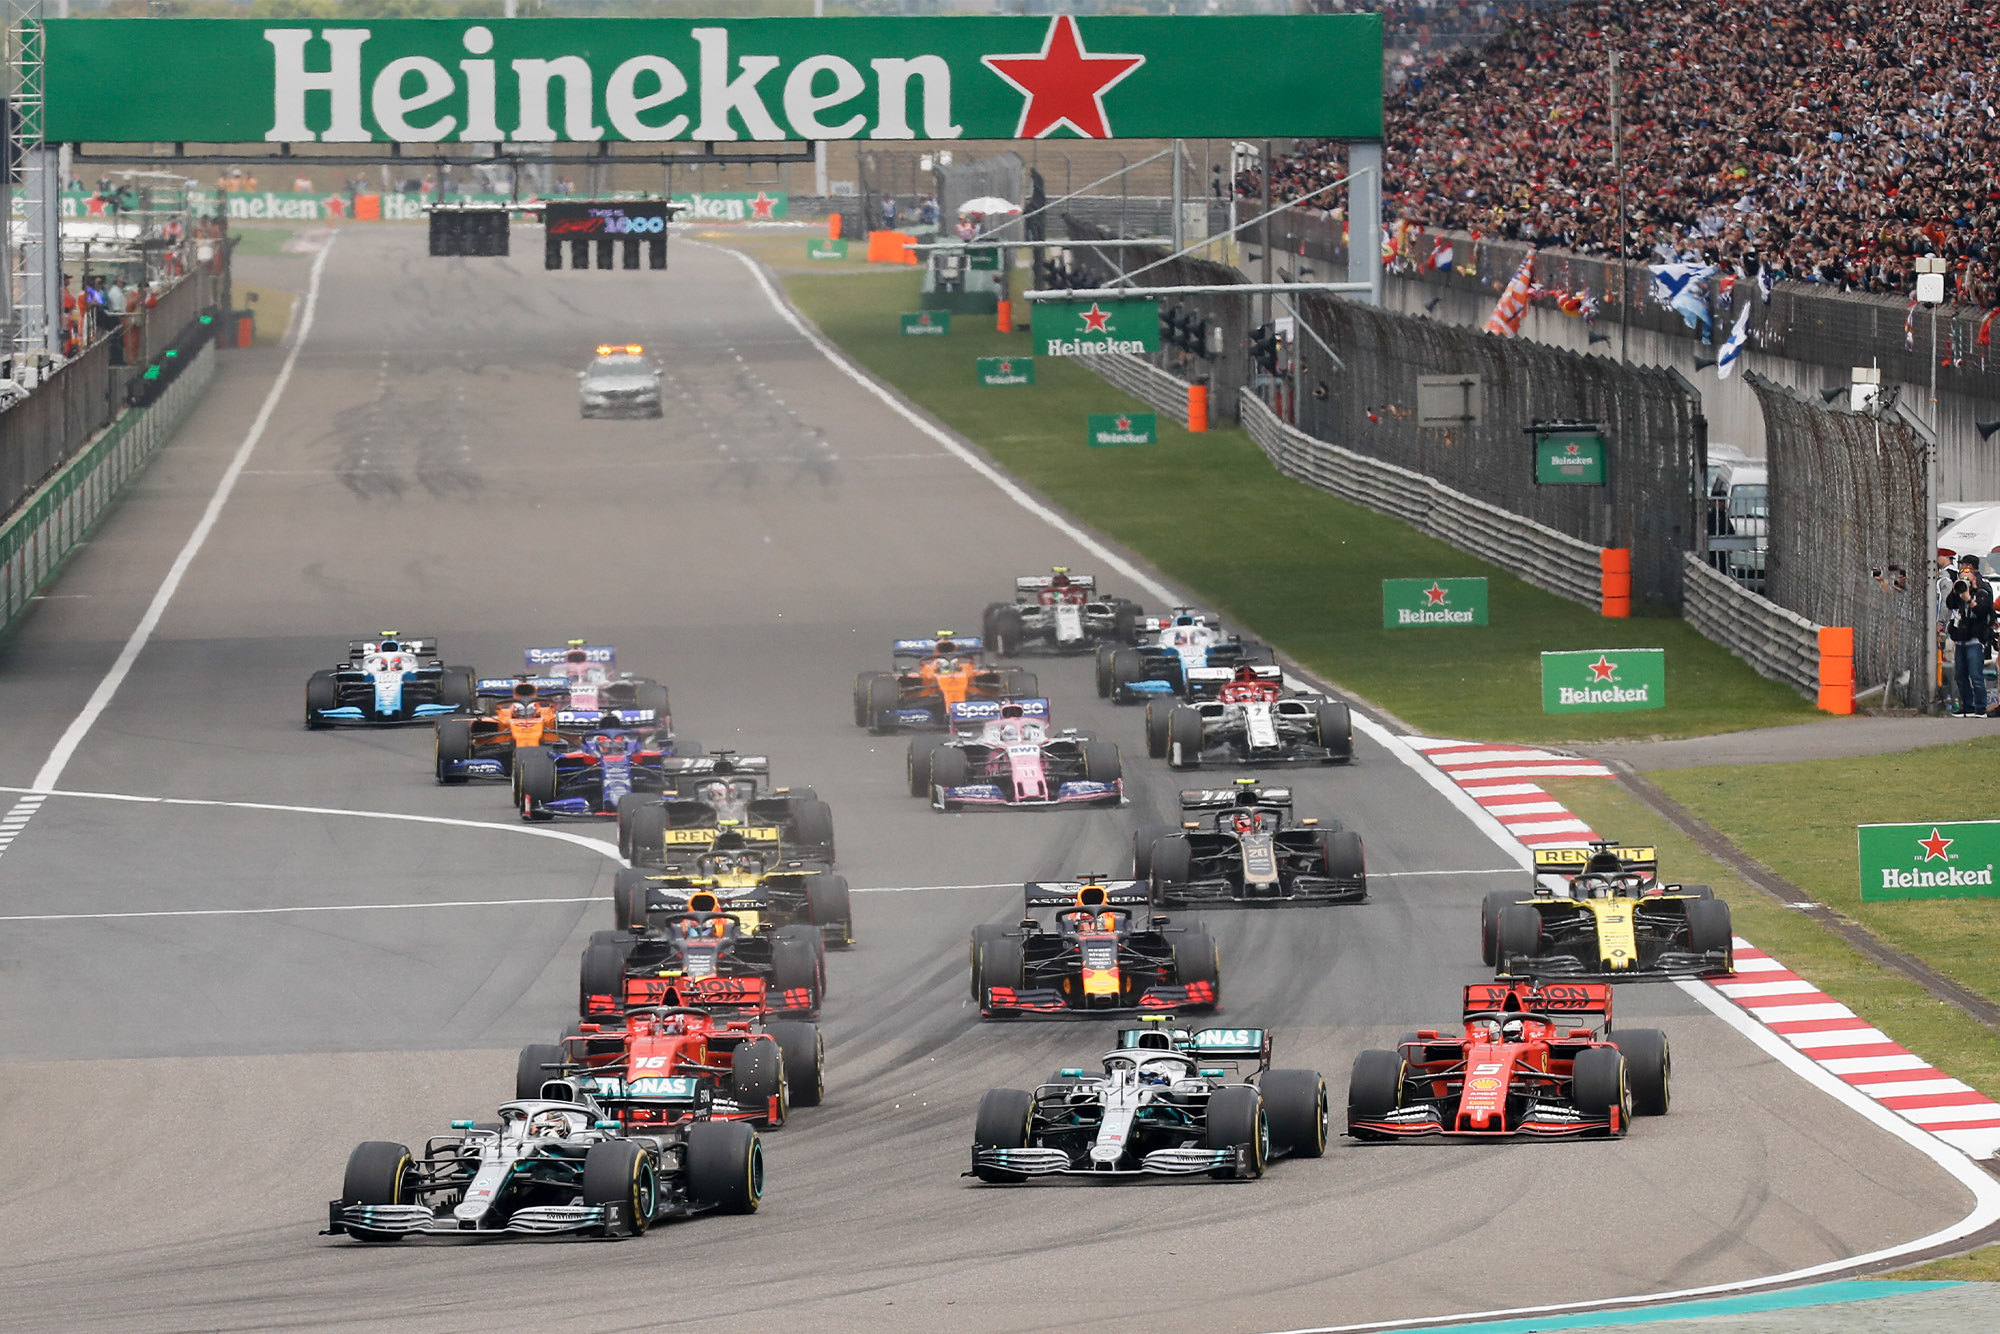 2020 Chinese Grand Prix postponed amid coronavirus outbreak